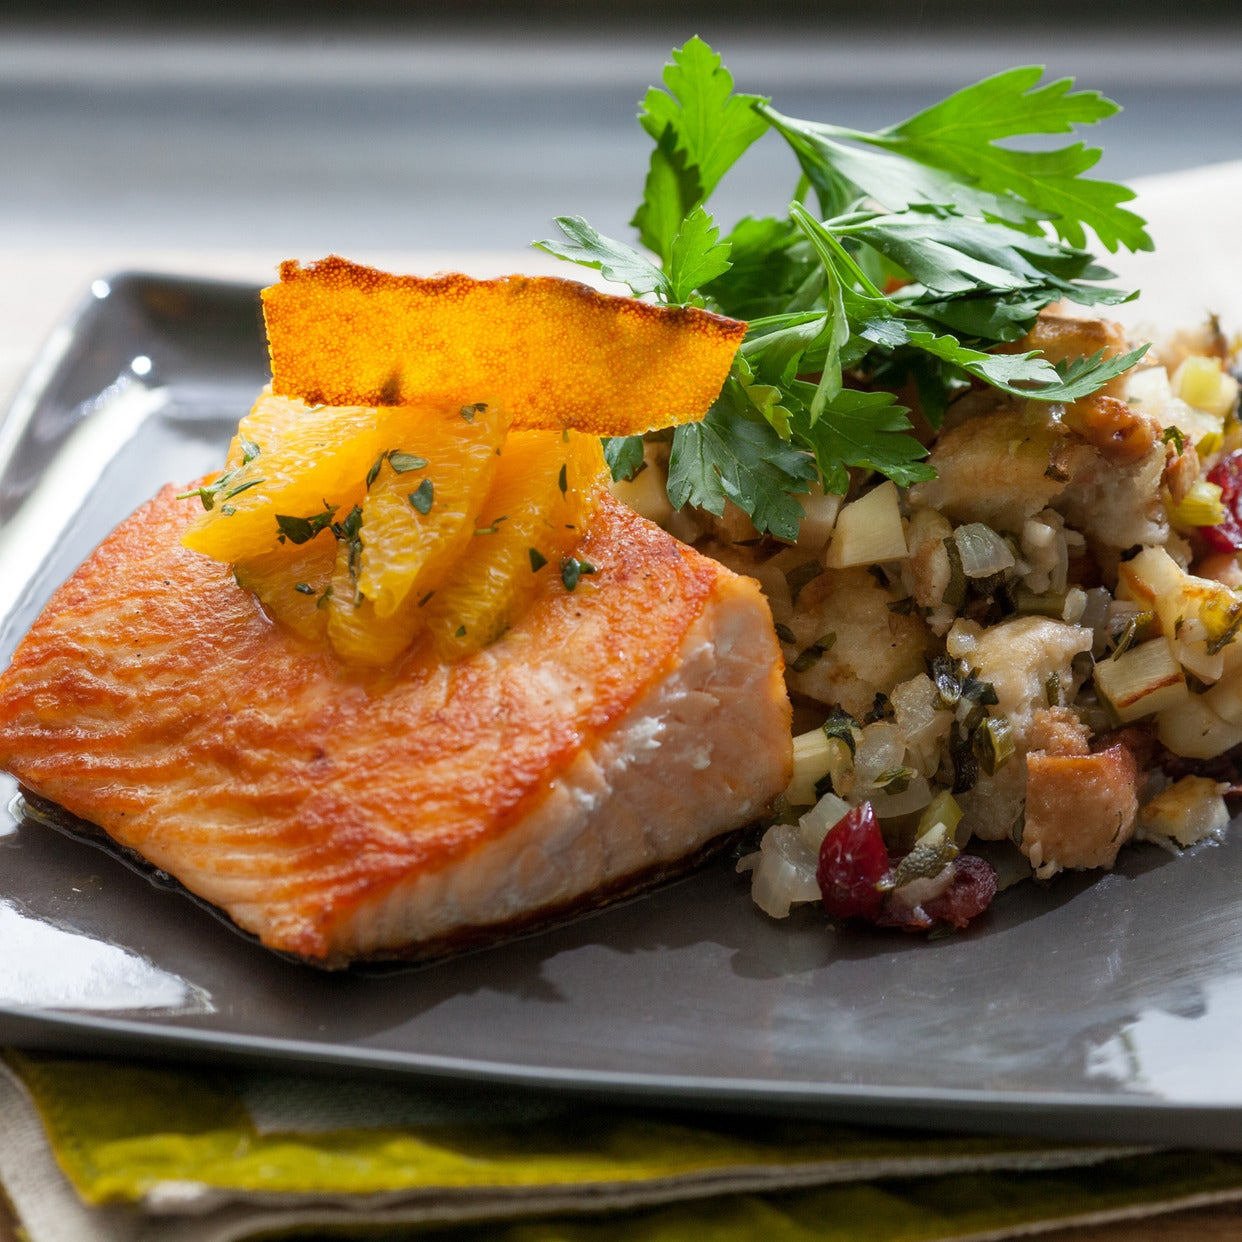 Pan-Seared Salmon with Candied Orange Peel & Cranberry-Walnut Stuffing